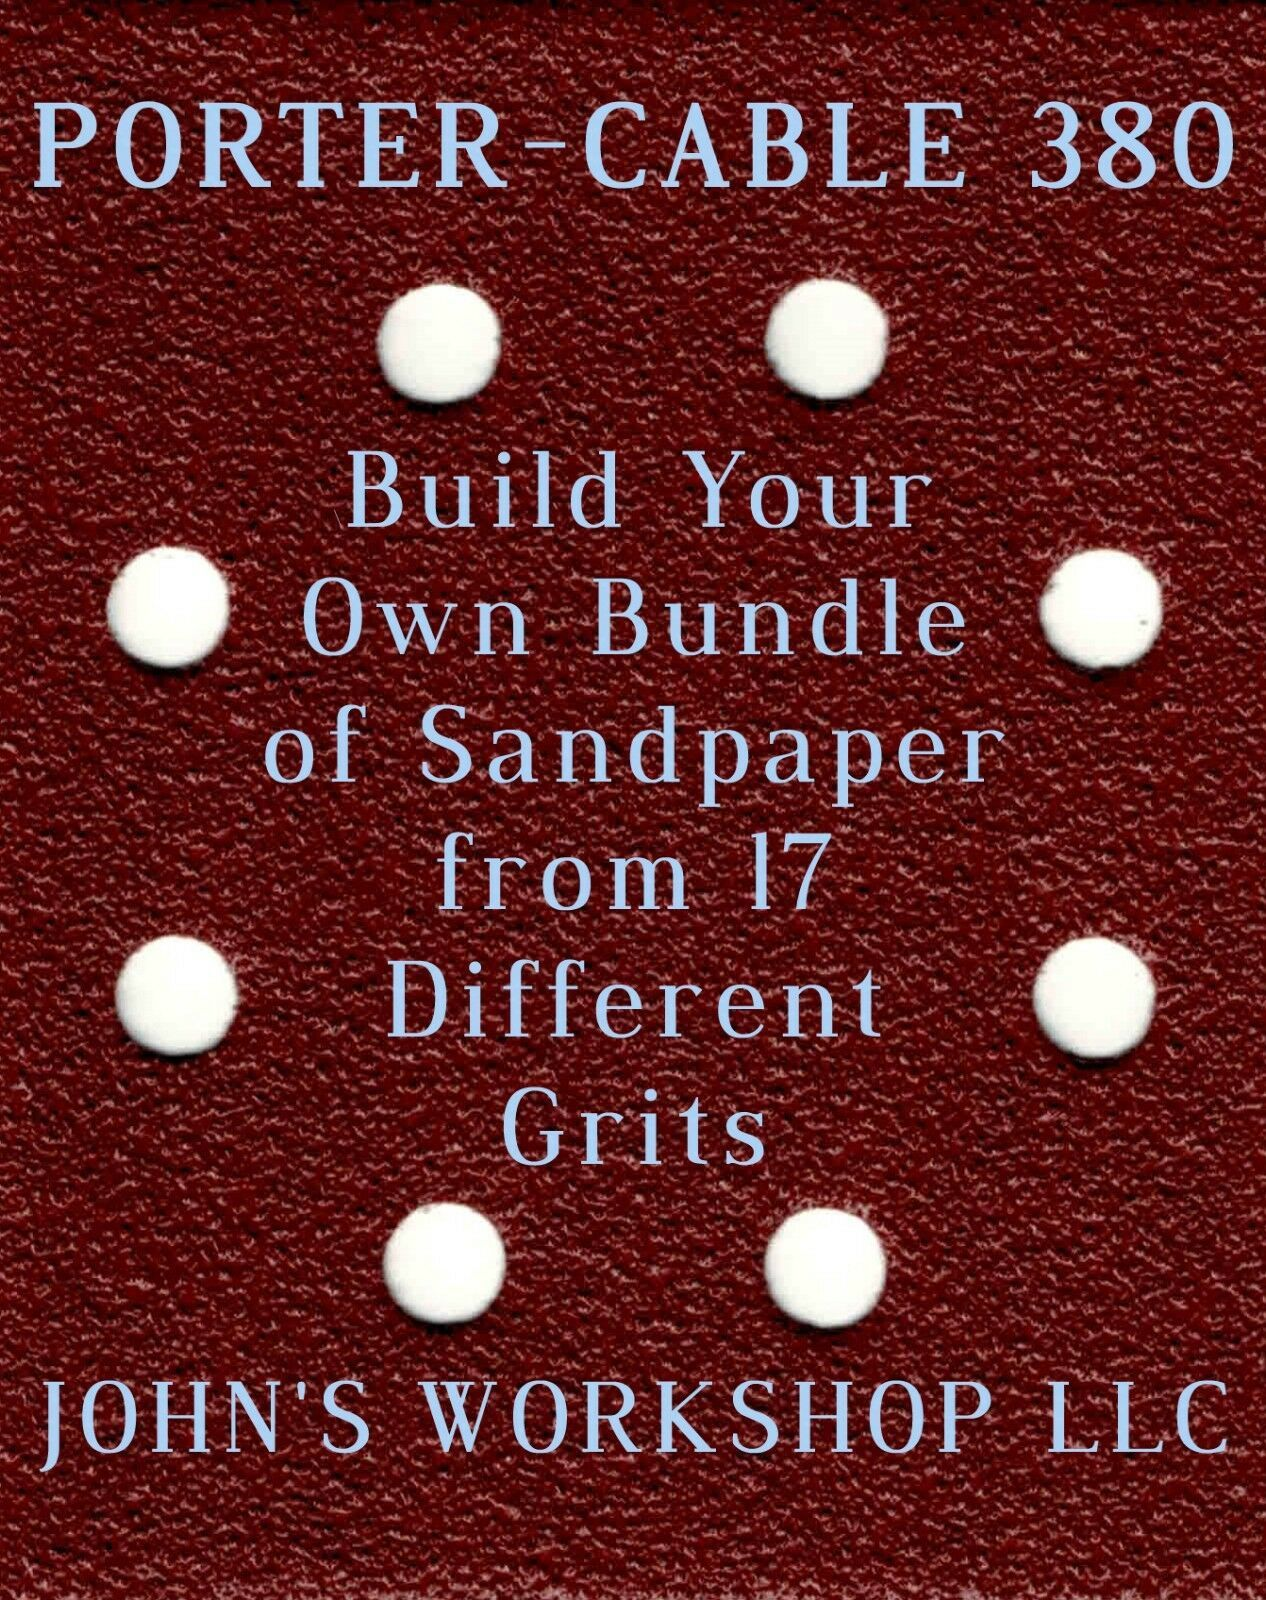 Primary image for Build Your Own Bundle PORTER-CABLE 380 1/4 Sheet No-Slip Sandpaper - 17 Grits!